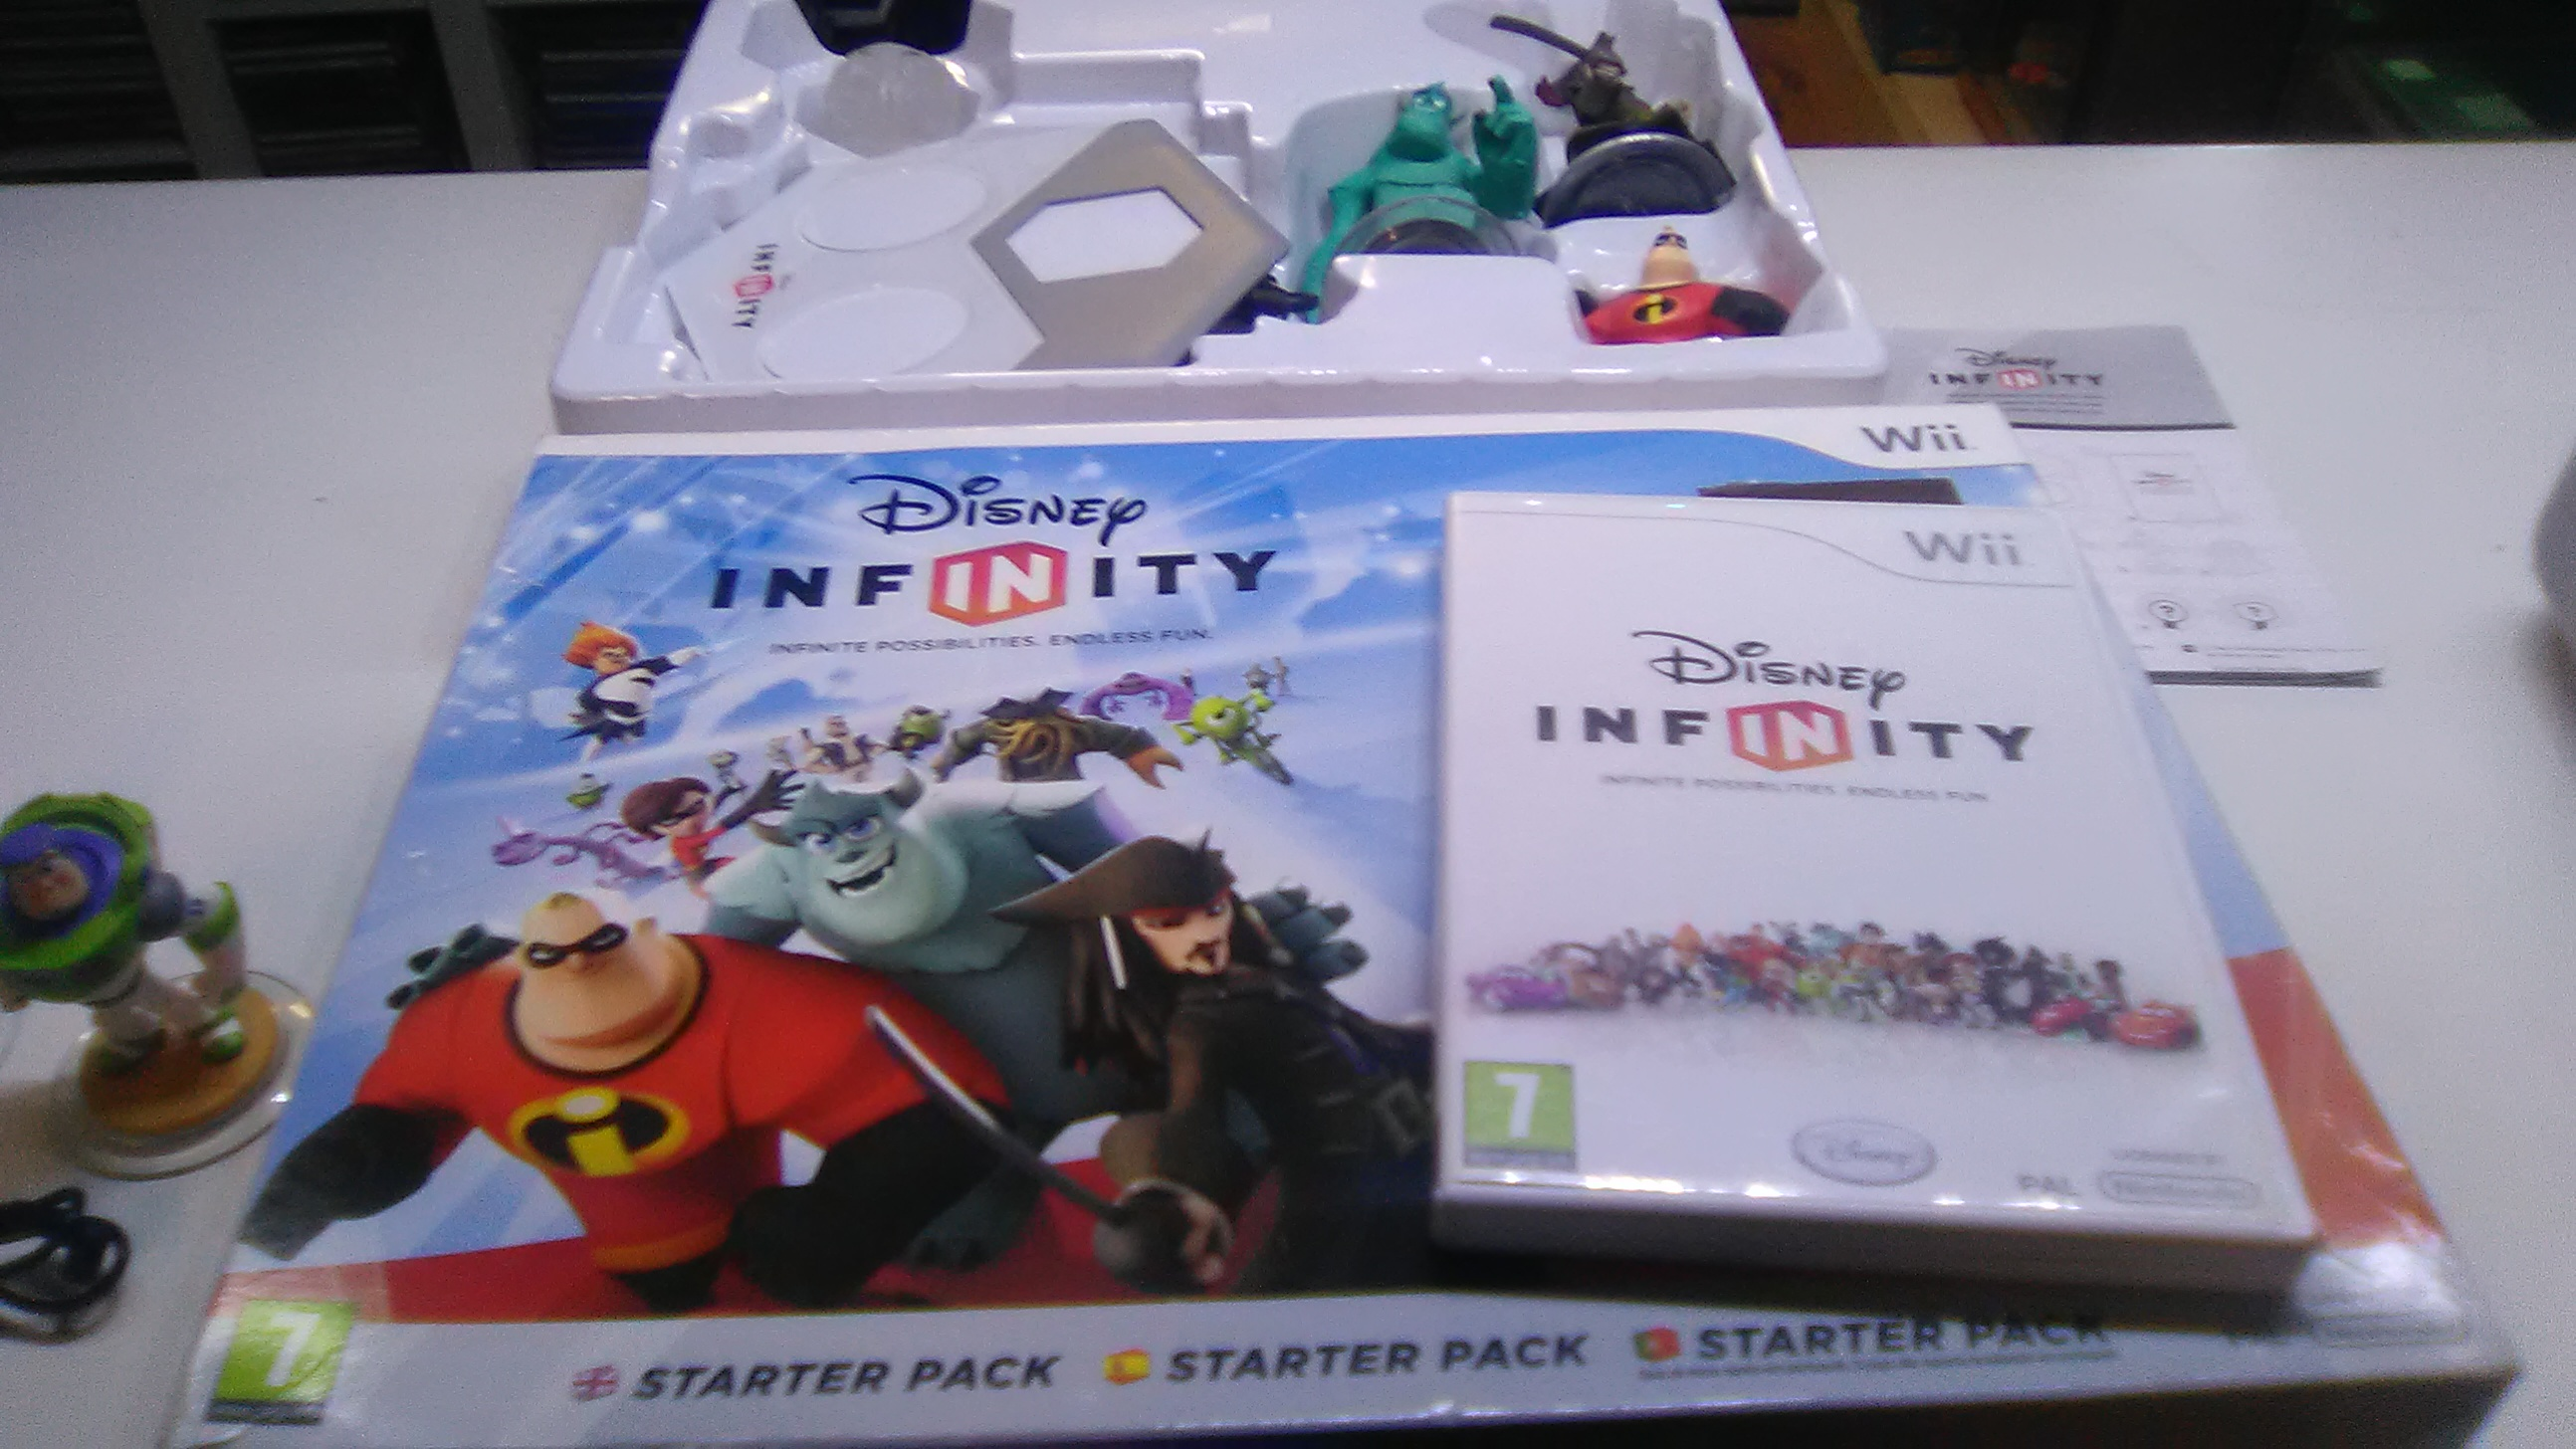 Wii infinity pack